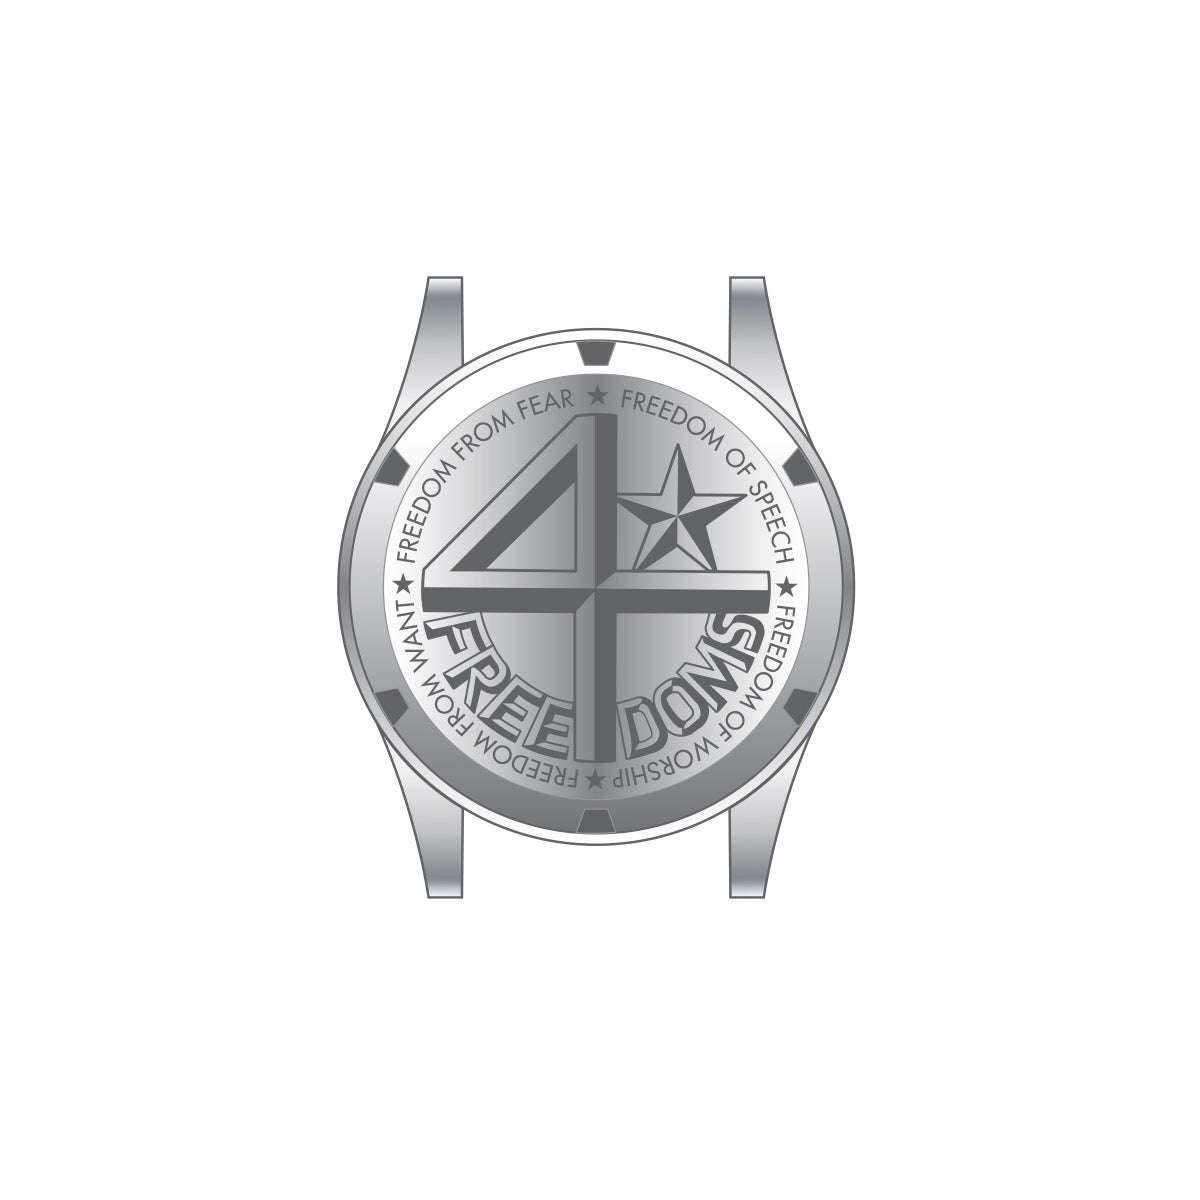 40N6.2.2M 40Nine 43mm 4Freedoms Watch